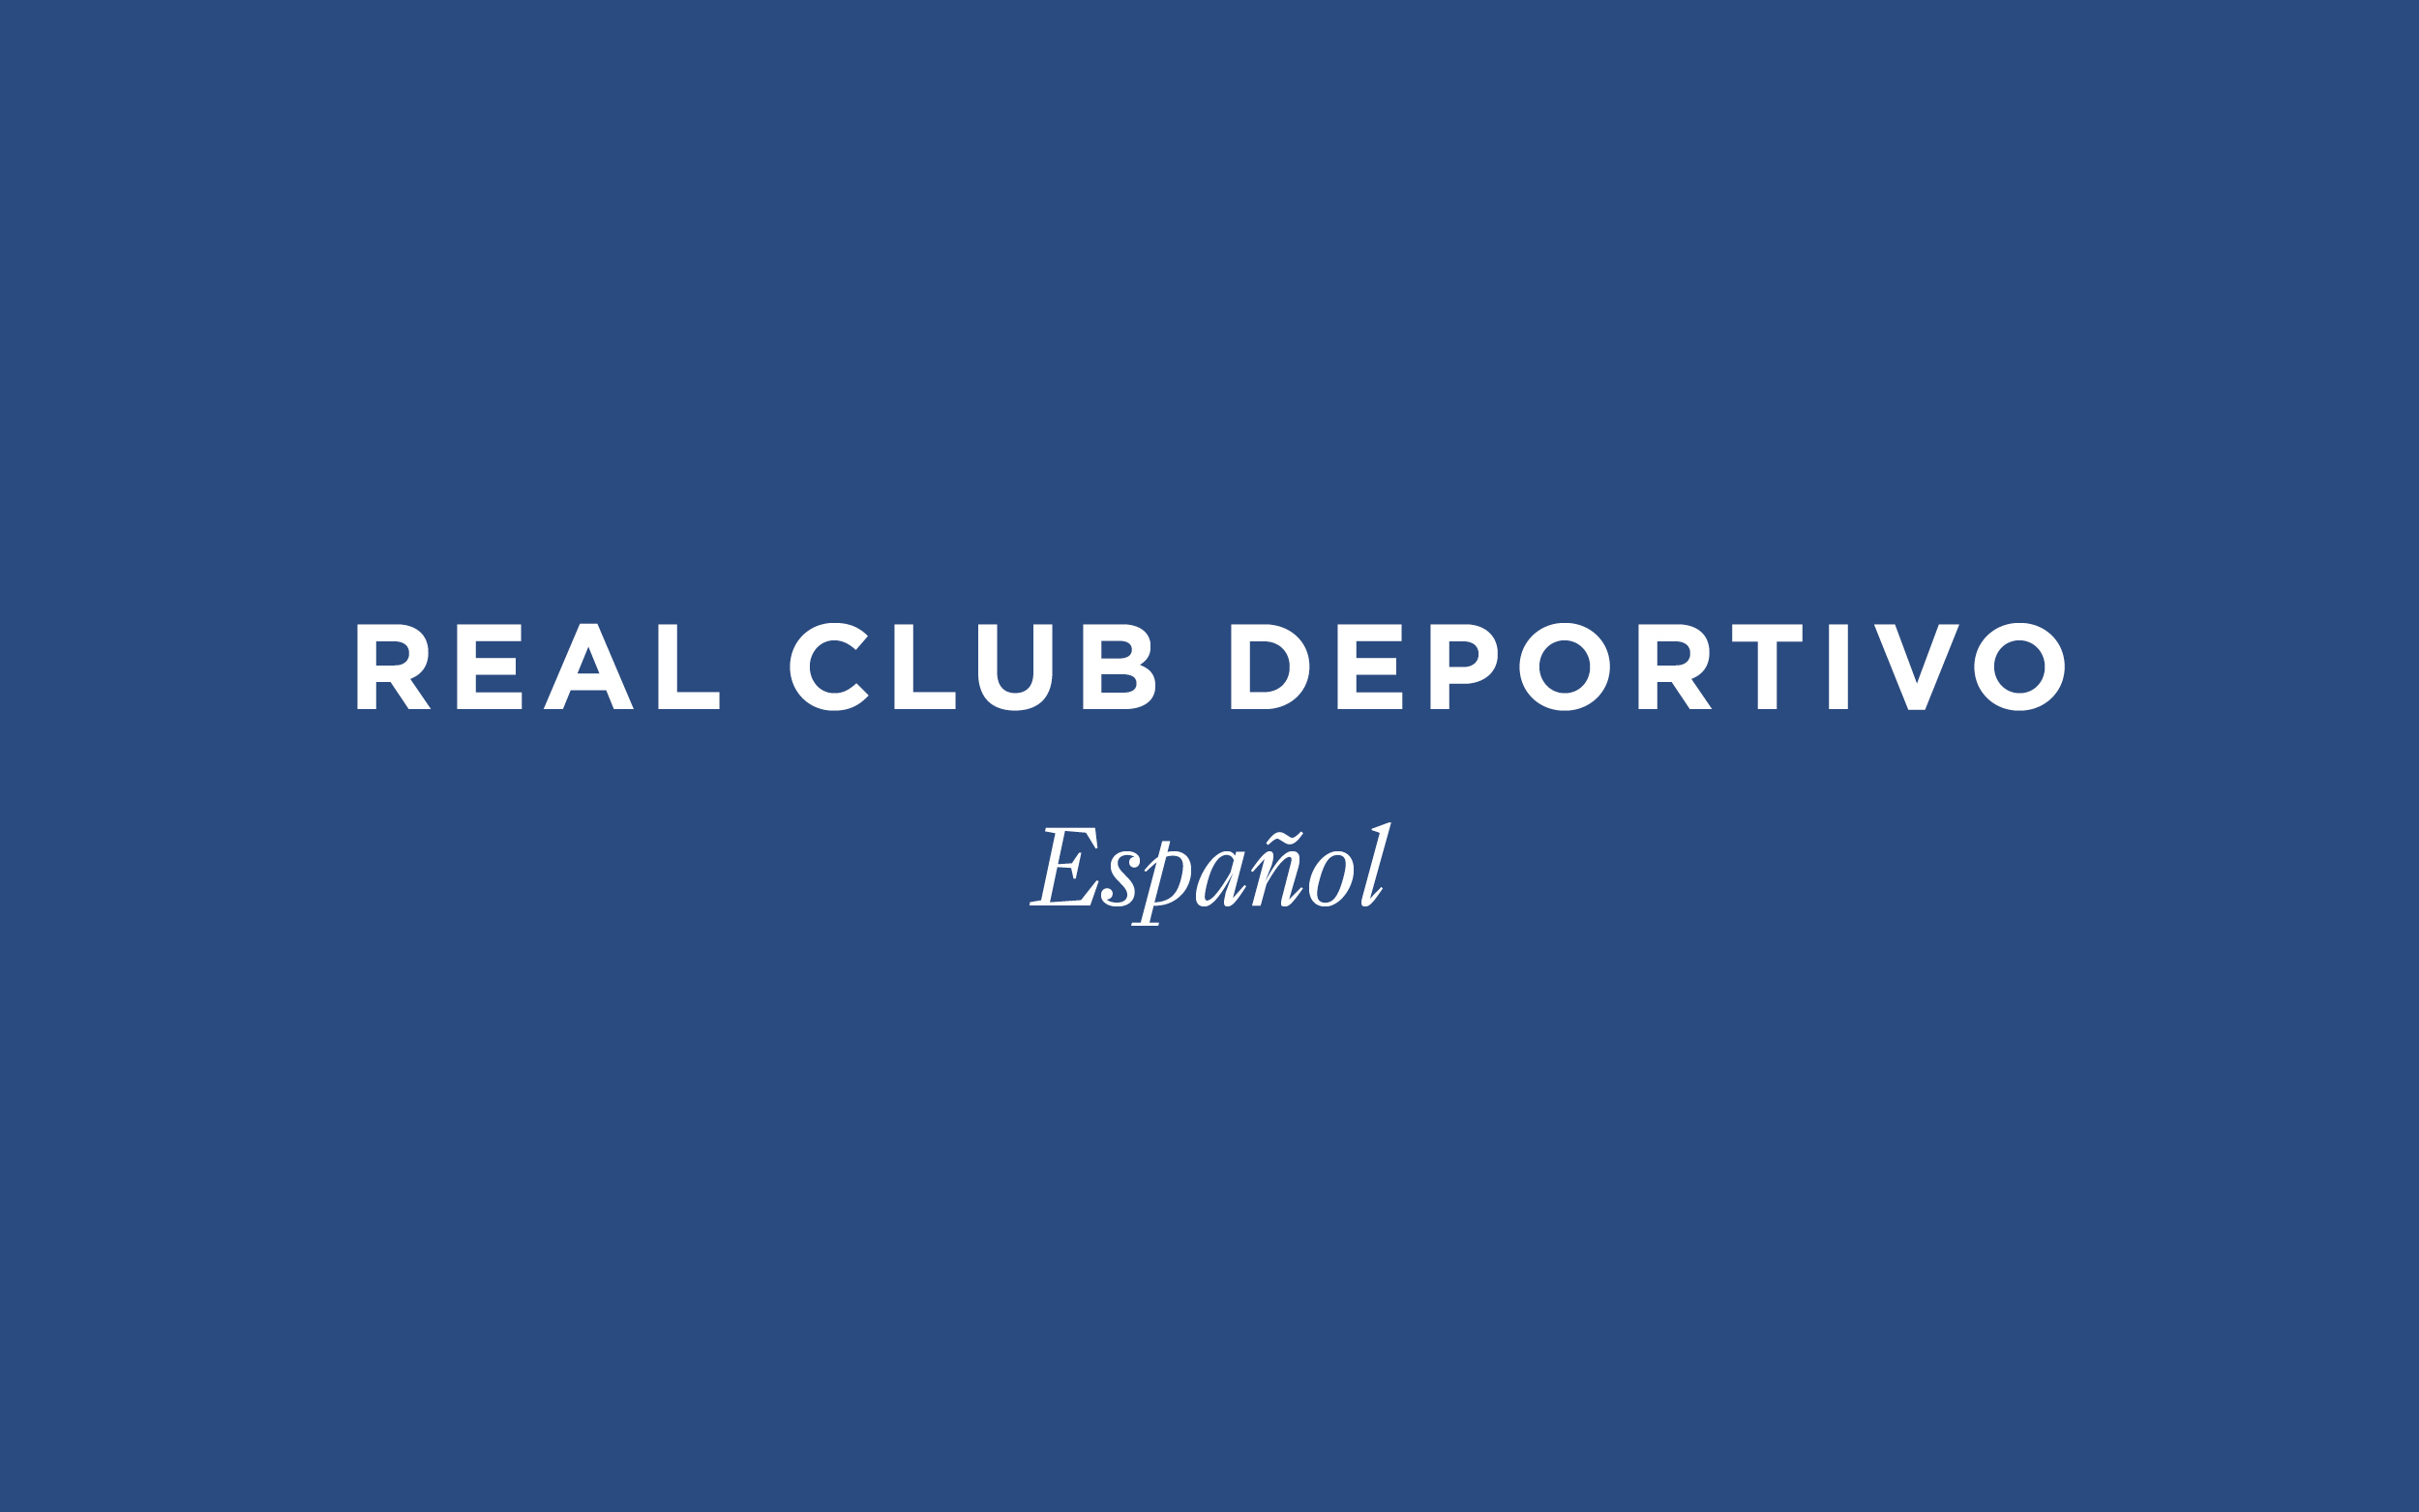 Real Club Deportivo